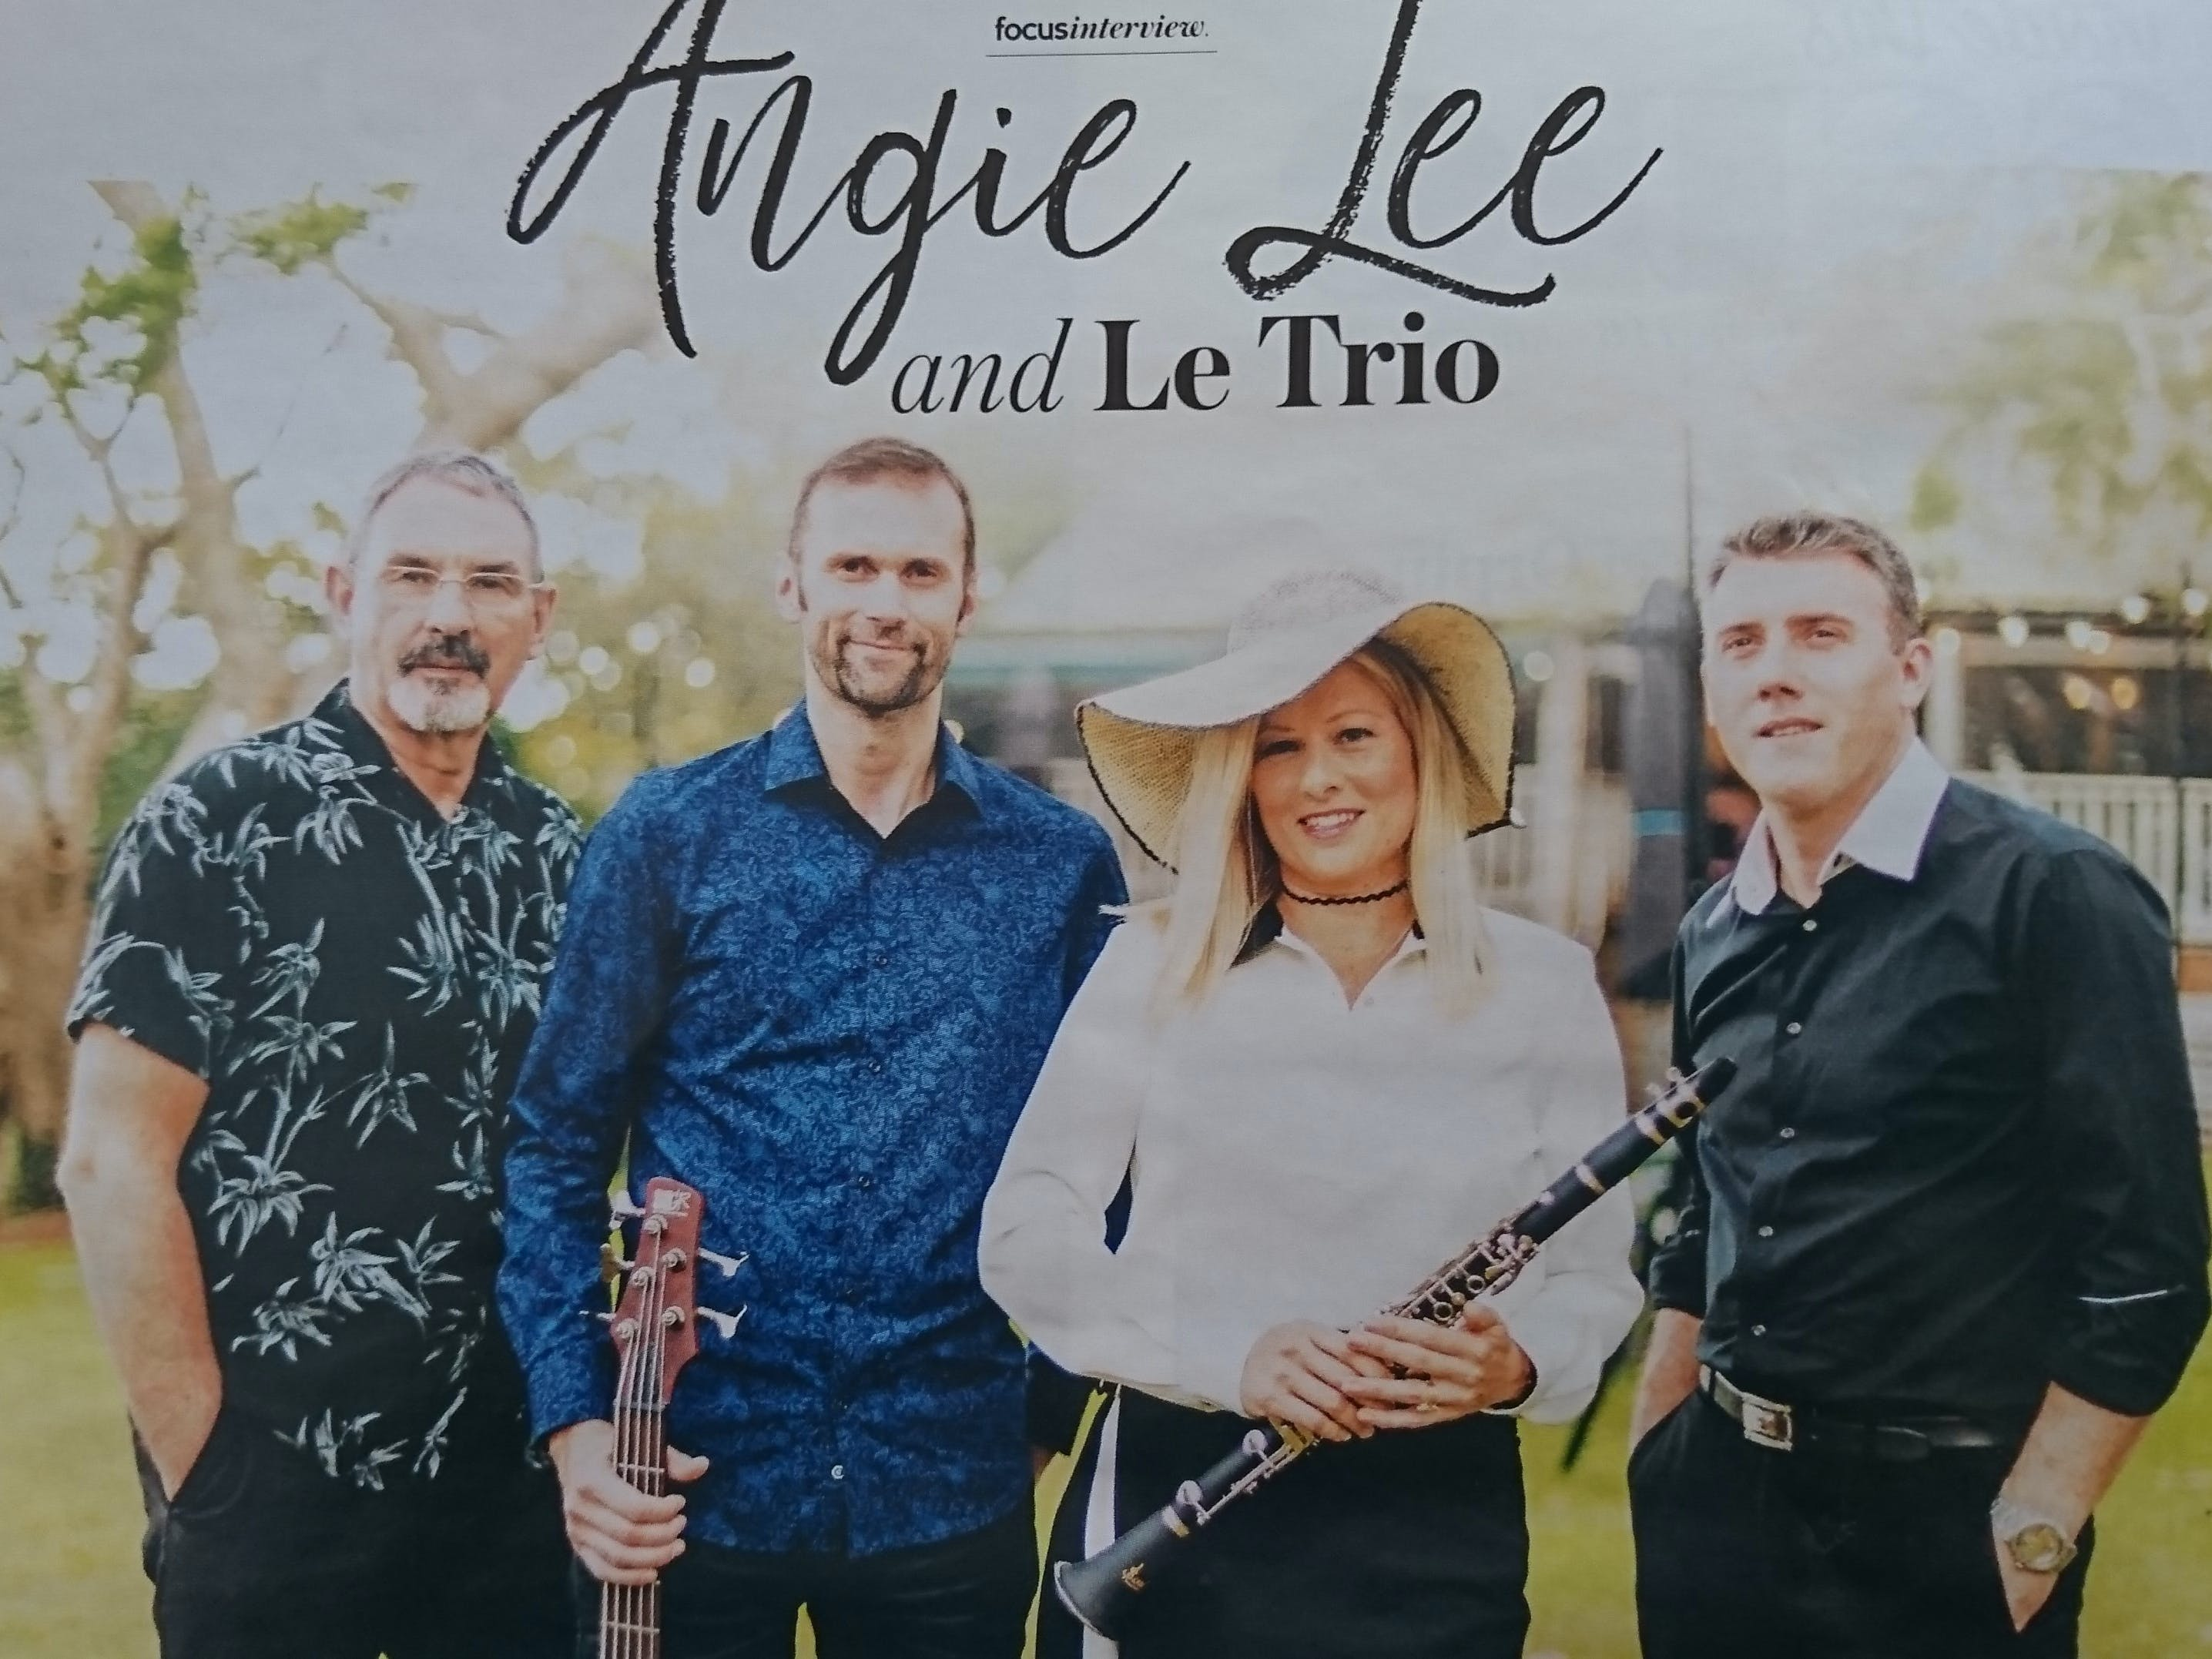 Angie Lee and Le Trio